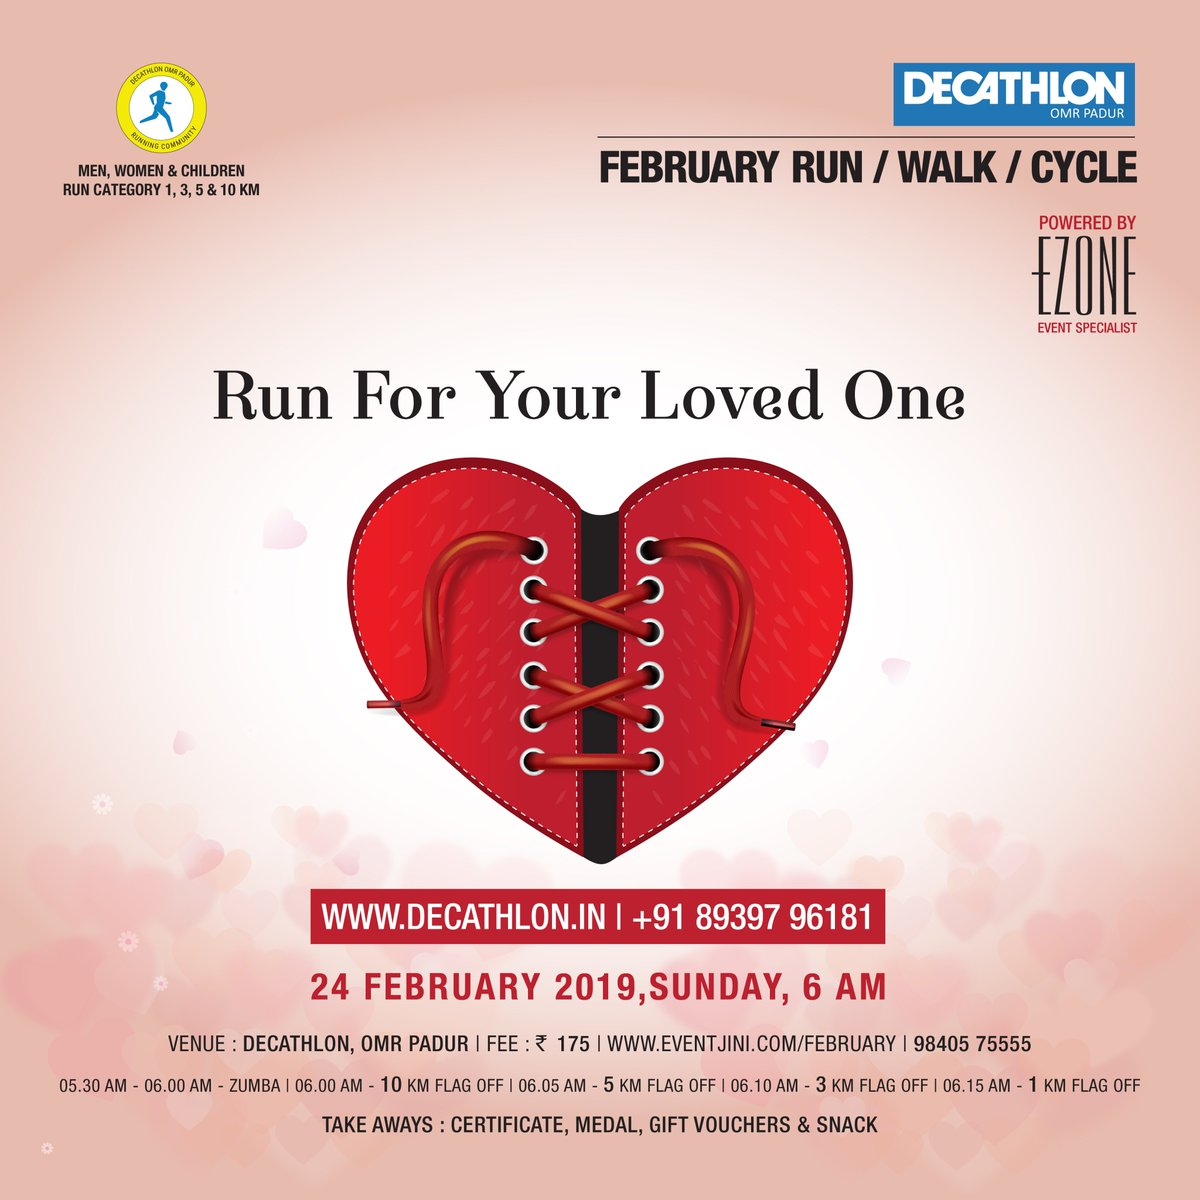 3ec9ad360 The chance to win an amazing gift. Run Walk Cycle with your family and  friends!!! Register Now   https   www.eventjini.com february   employeeENGAGEMENT ...